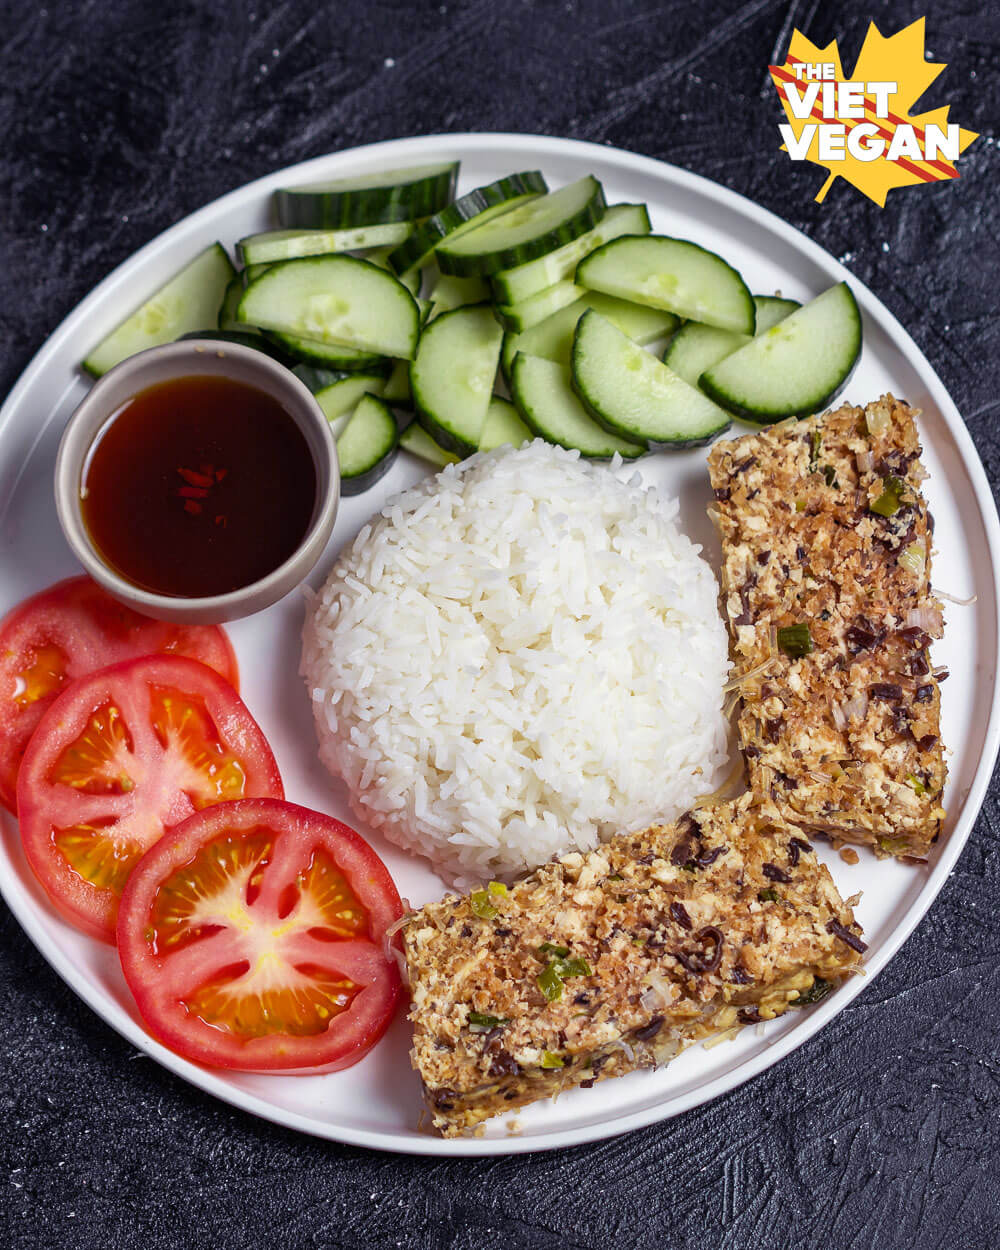 meatloaf slices on a plate with a mound of white rice, cucumber, sliced tomato, and sauce, from above